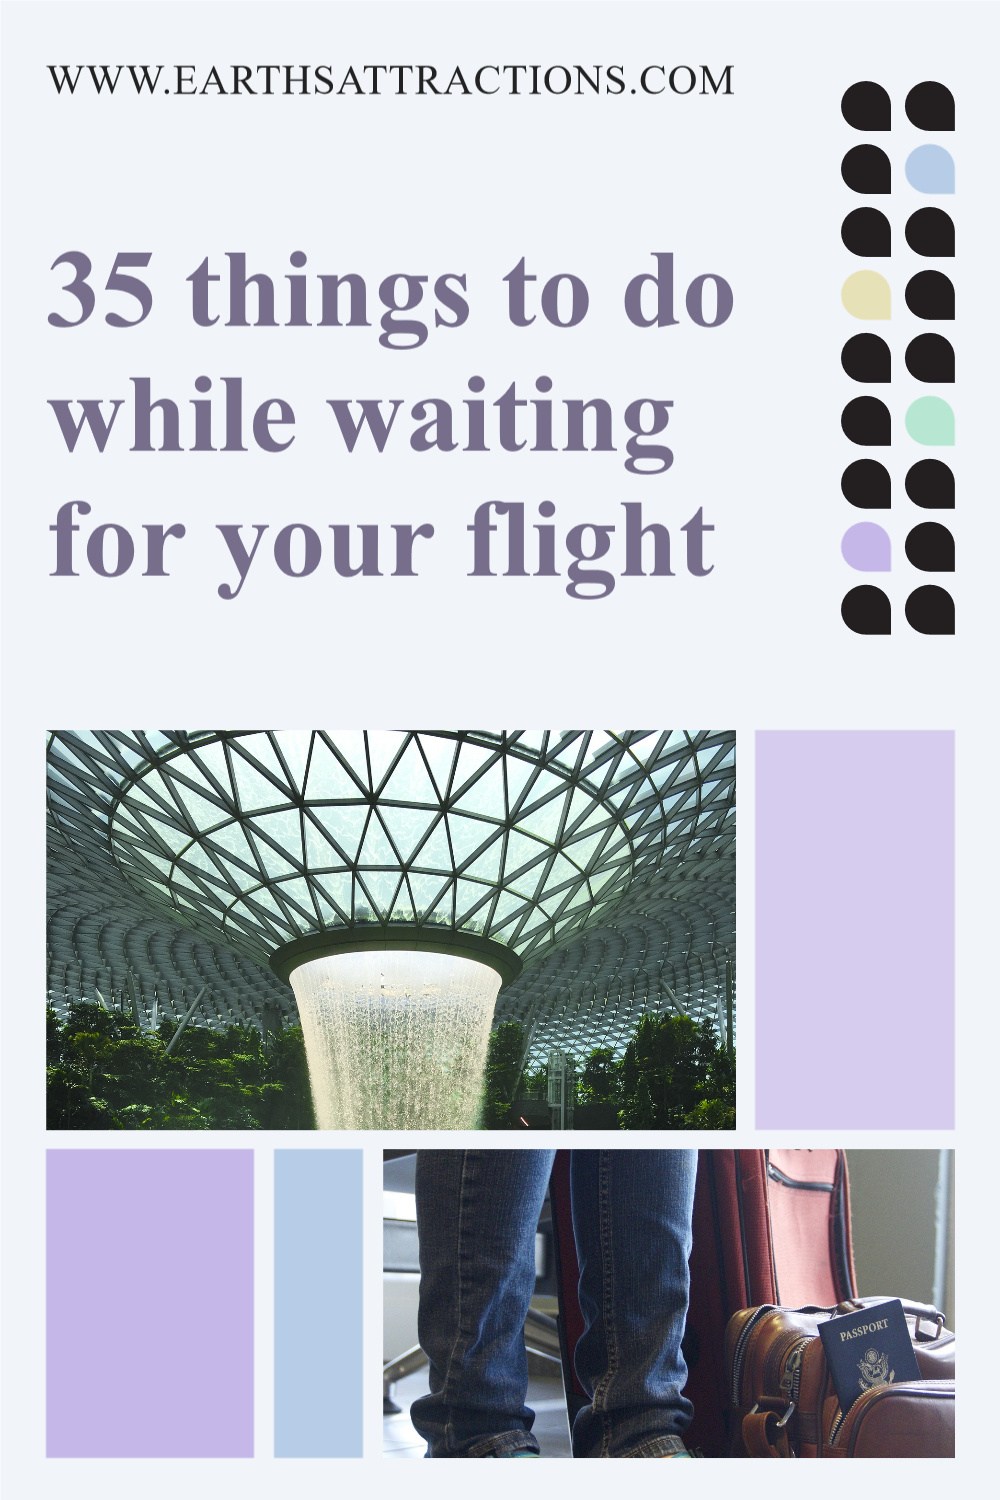 35 things to do while waiting for your flight. Discover the best activities before boarding! #travel #airport #airportactivities #airportthingstodo #traveltips #earthsattractions